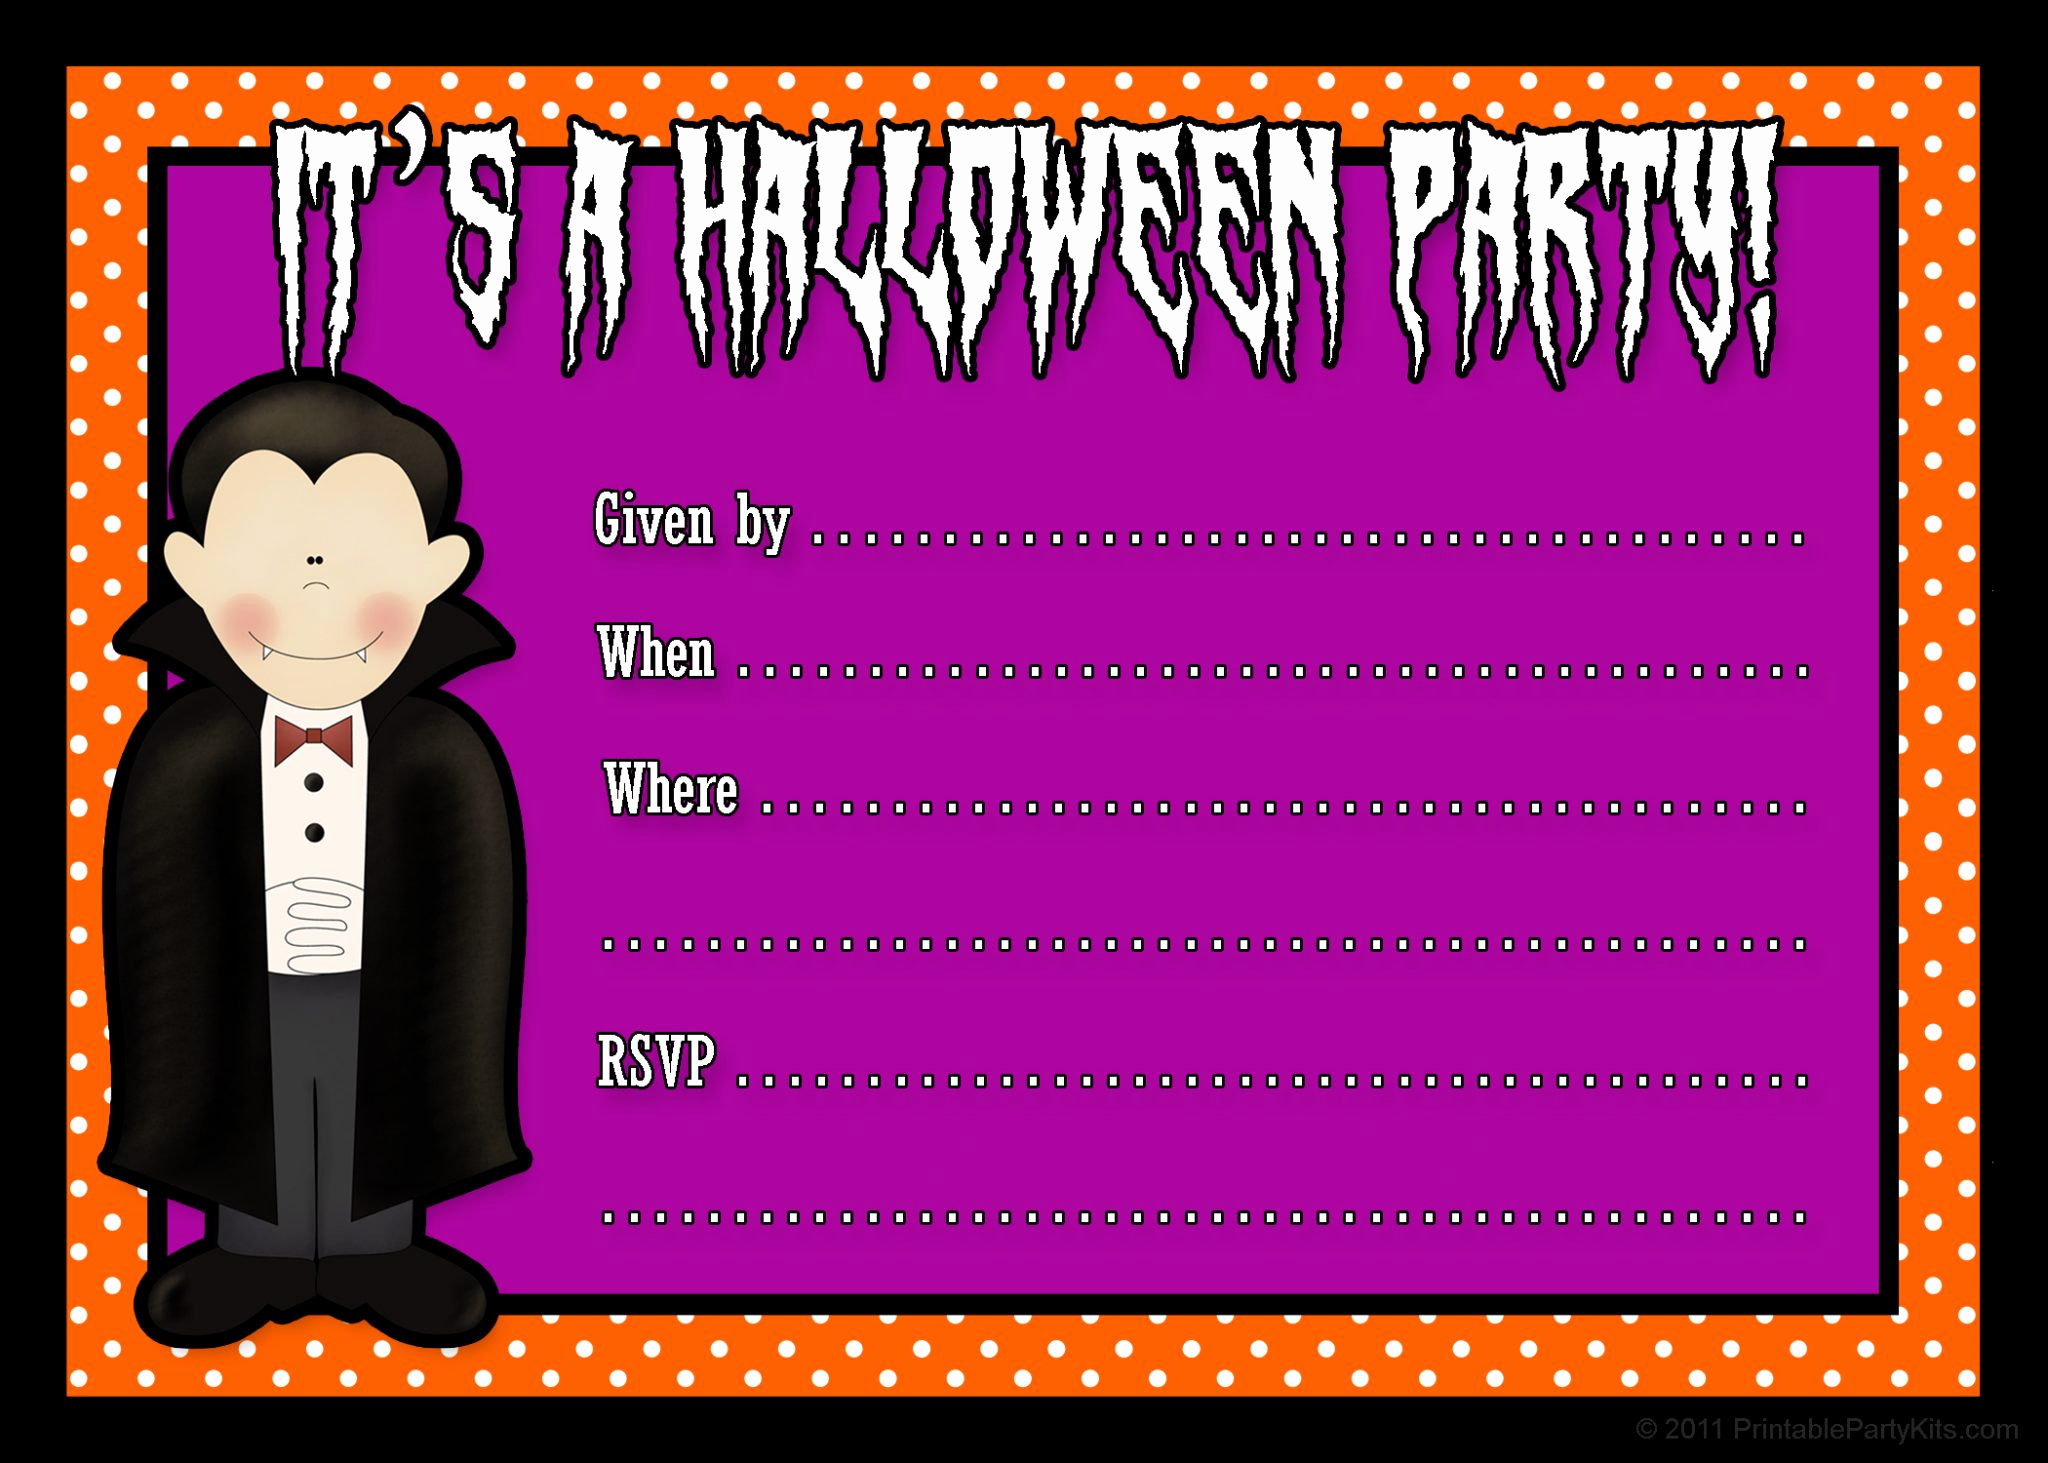 Halloween Party Invitation Templates Lovely Free Printable Halloween Party Invites